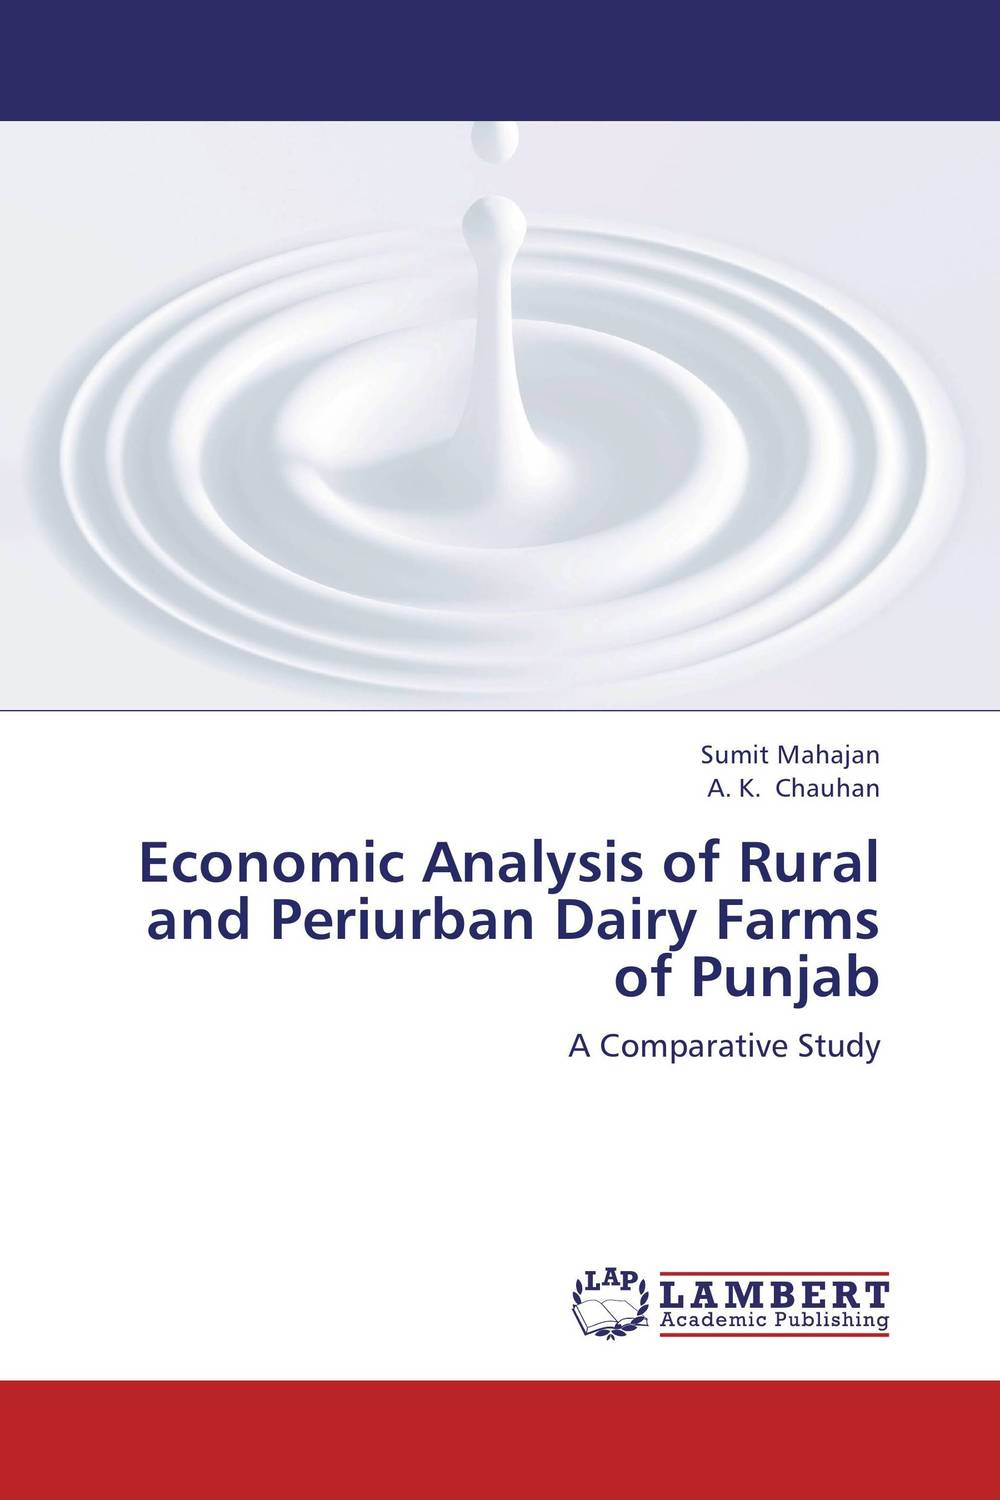 Economic Analysis of Rural and Periurban Dairy Farms of Punjab roles of selenium in farms and in human health